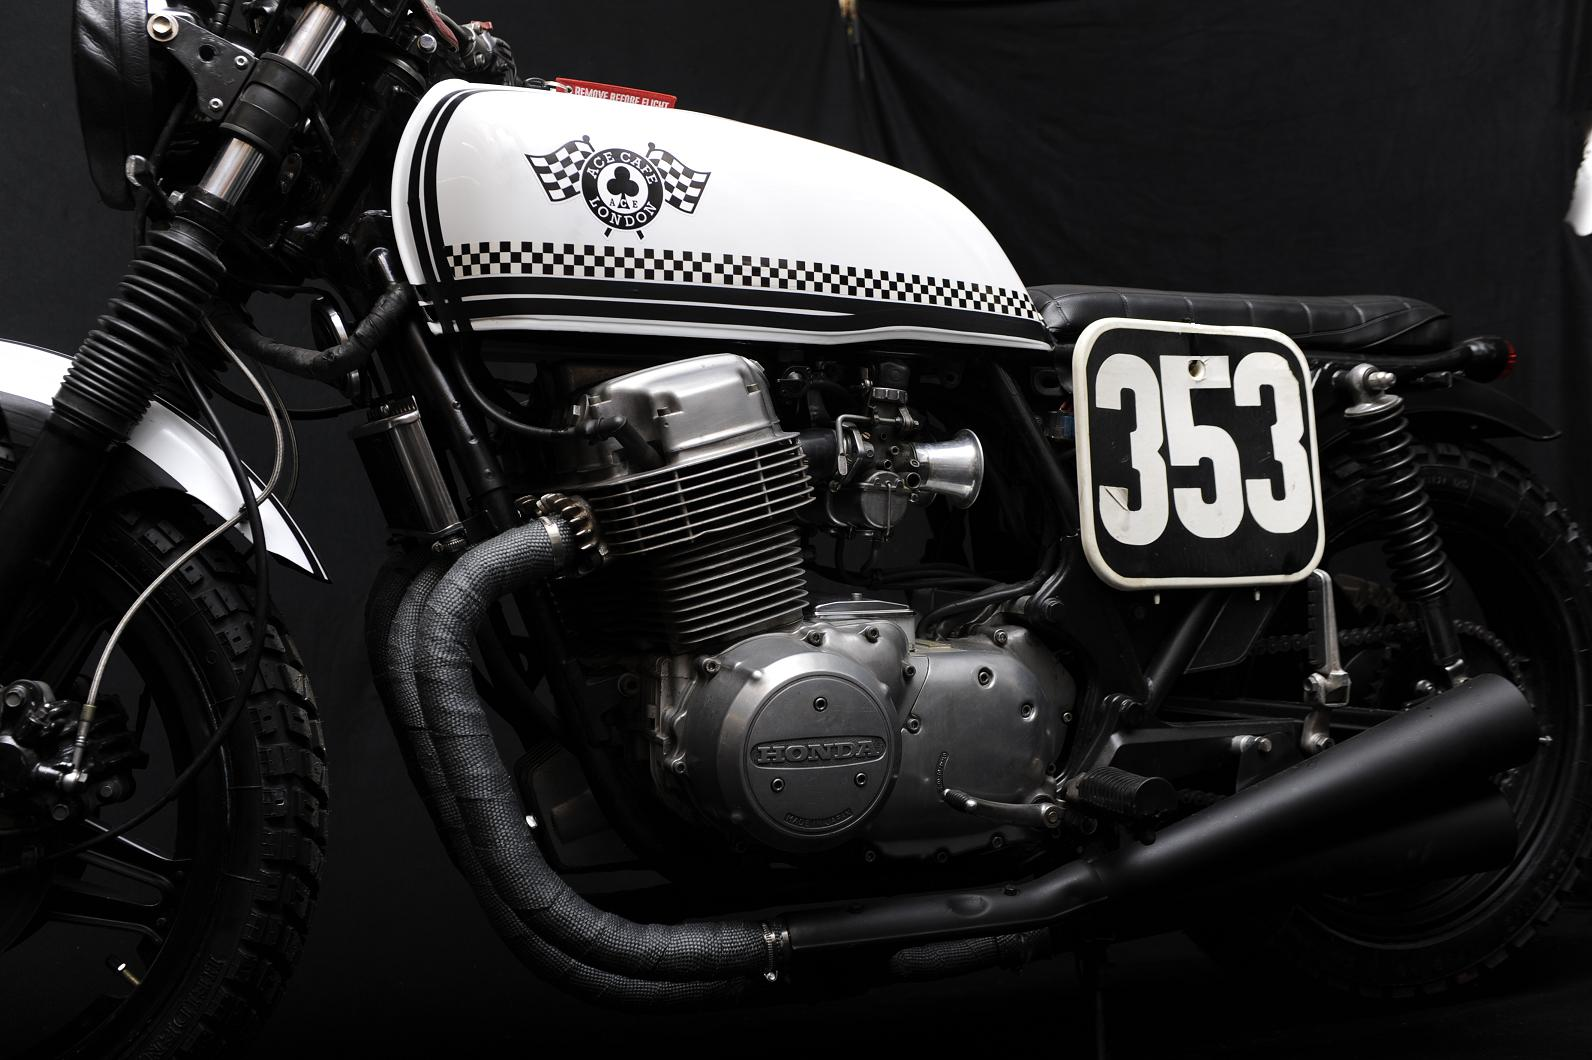 DSC8651 79 CB 750 Scrambler by Kiez Kustoms